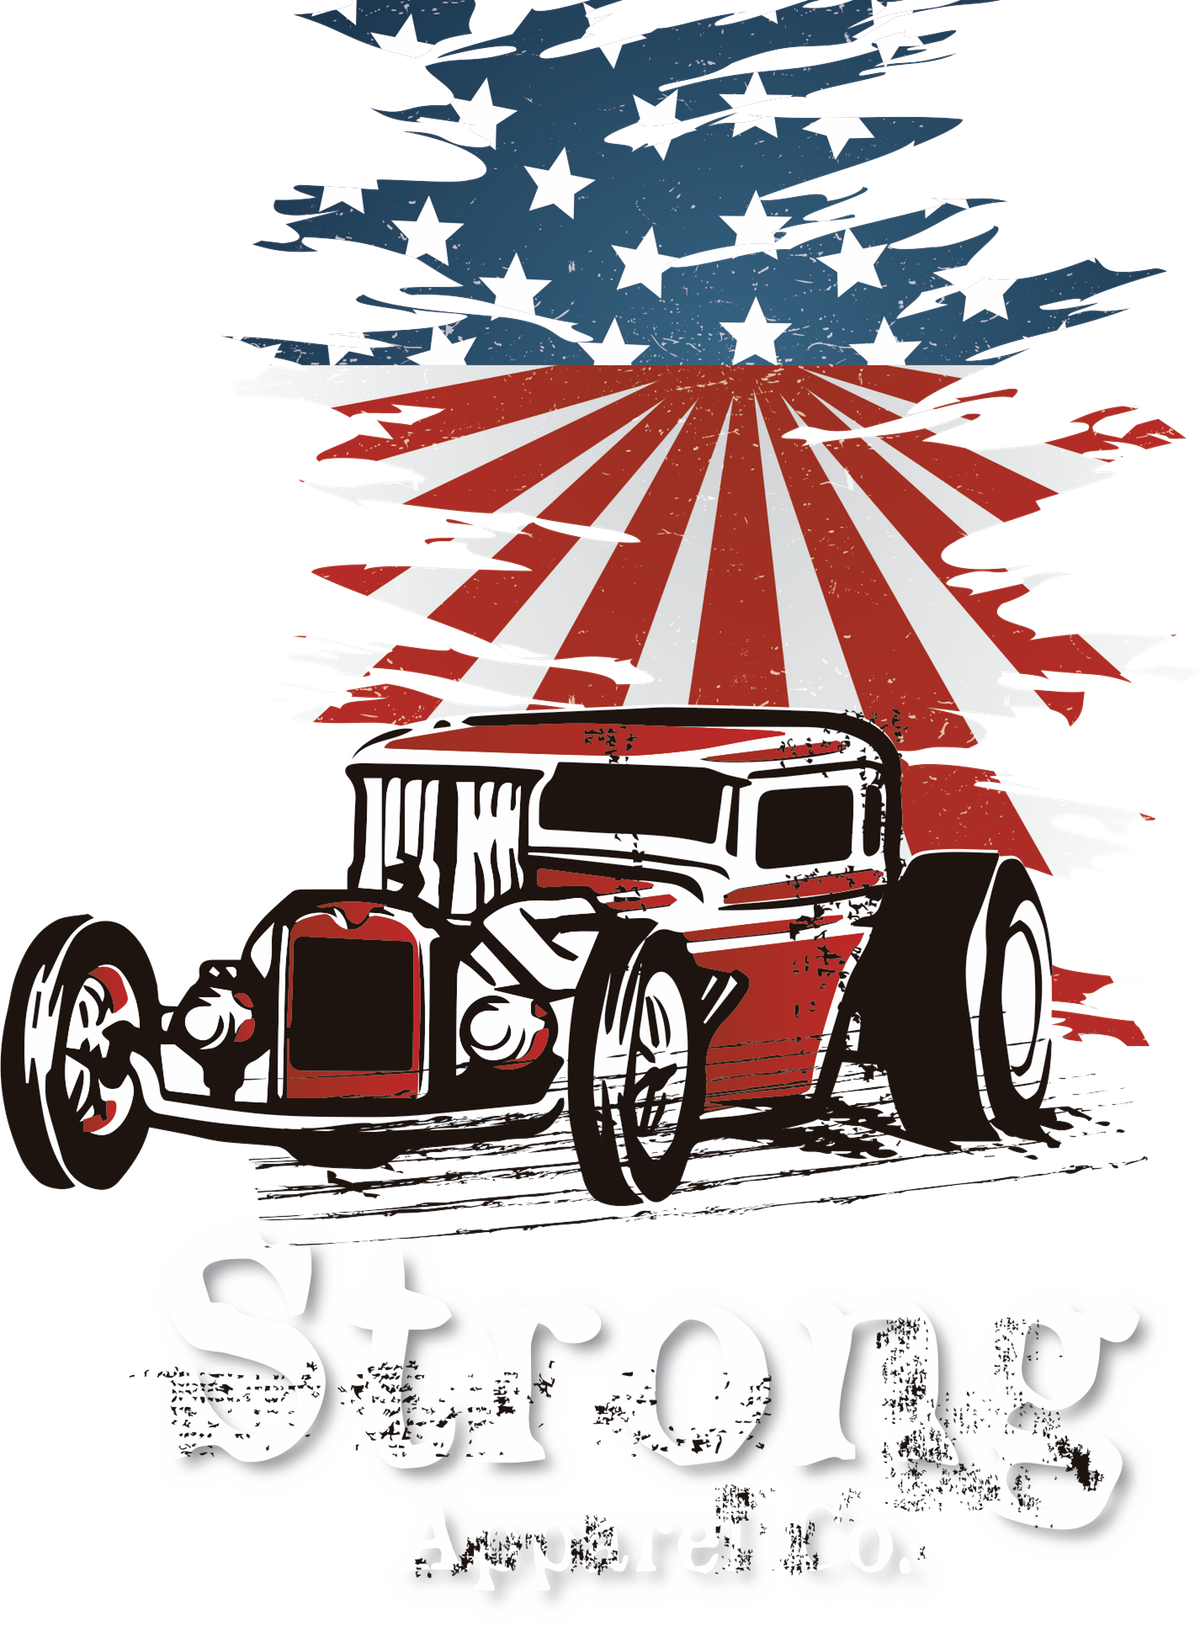 Design #7 from the Strong Apparel Contest